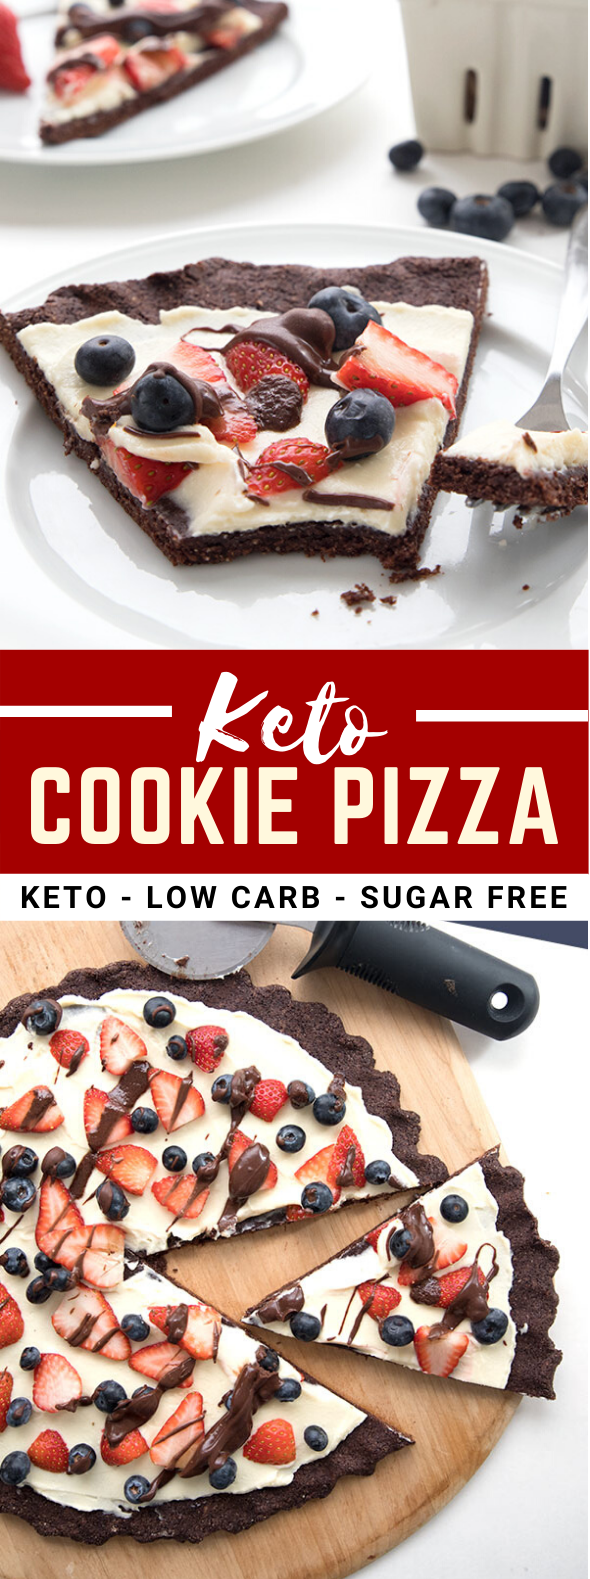 KETO COOKIE PIZZA #healthydessert #lowcarb